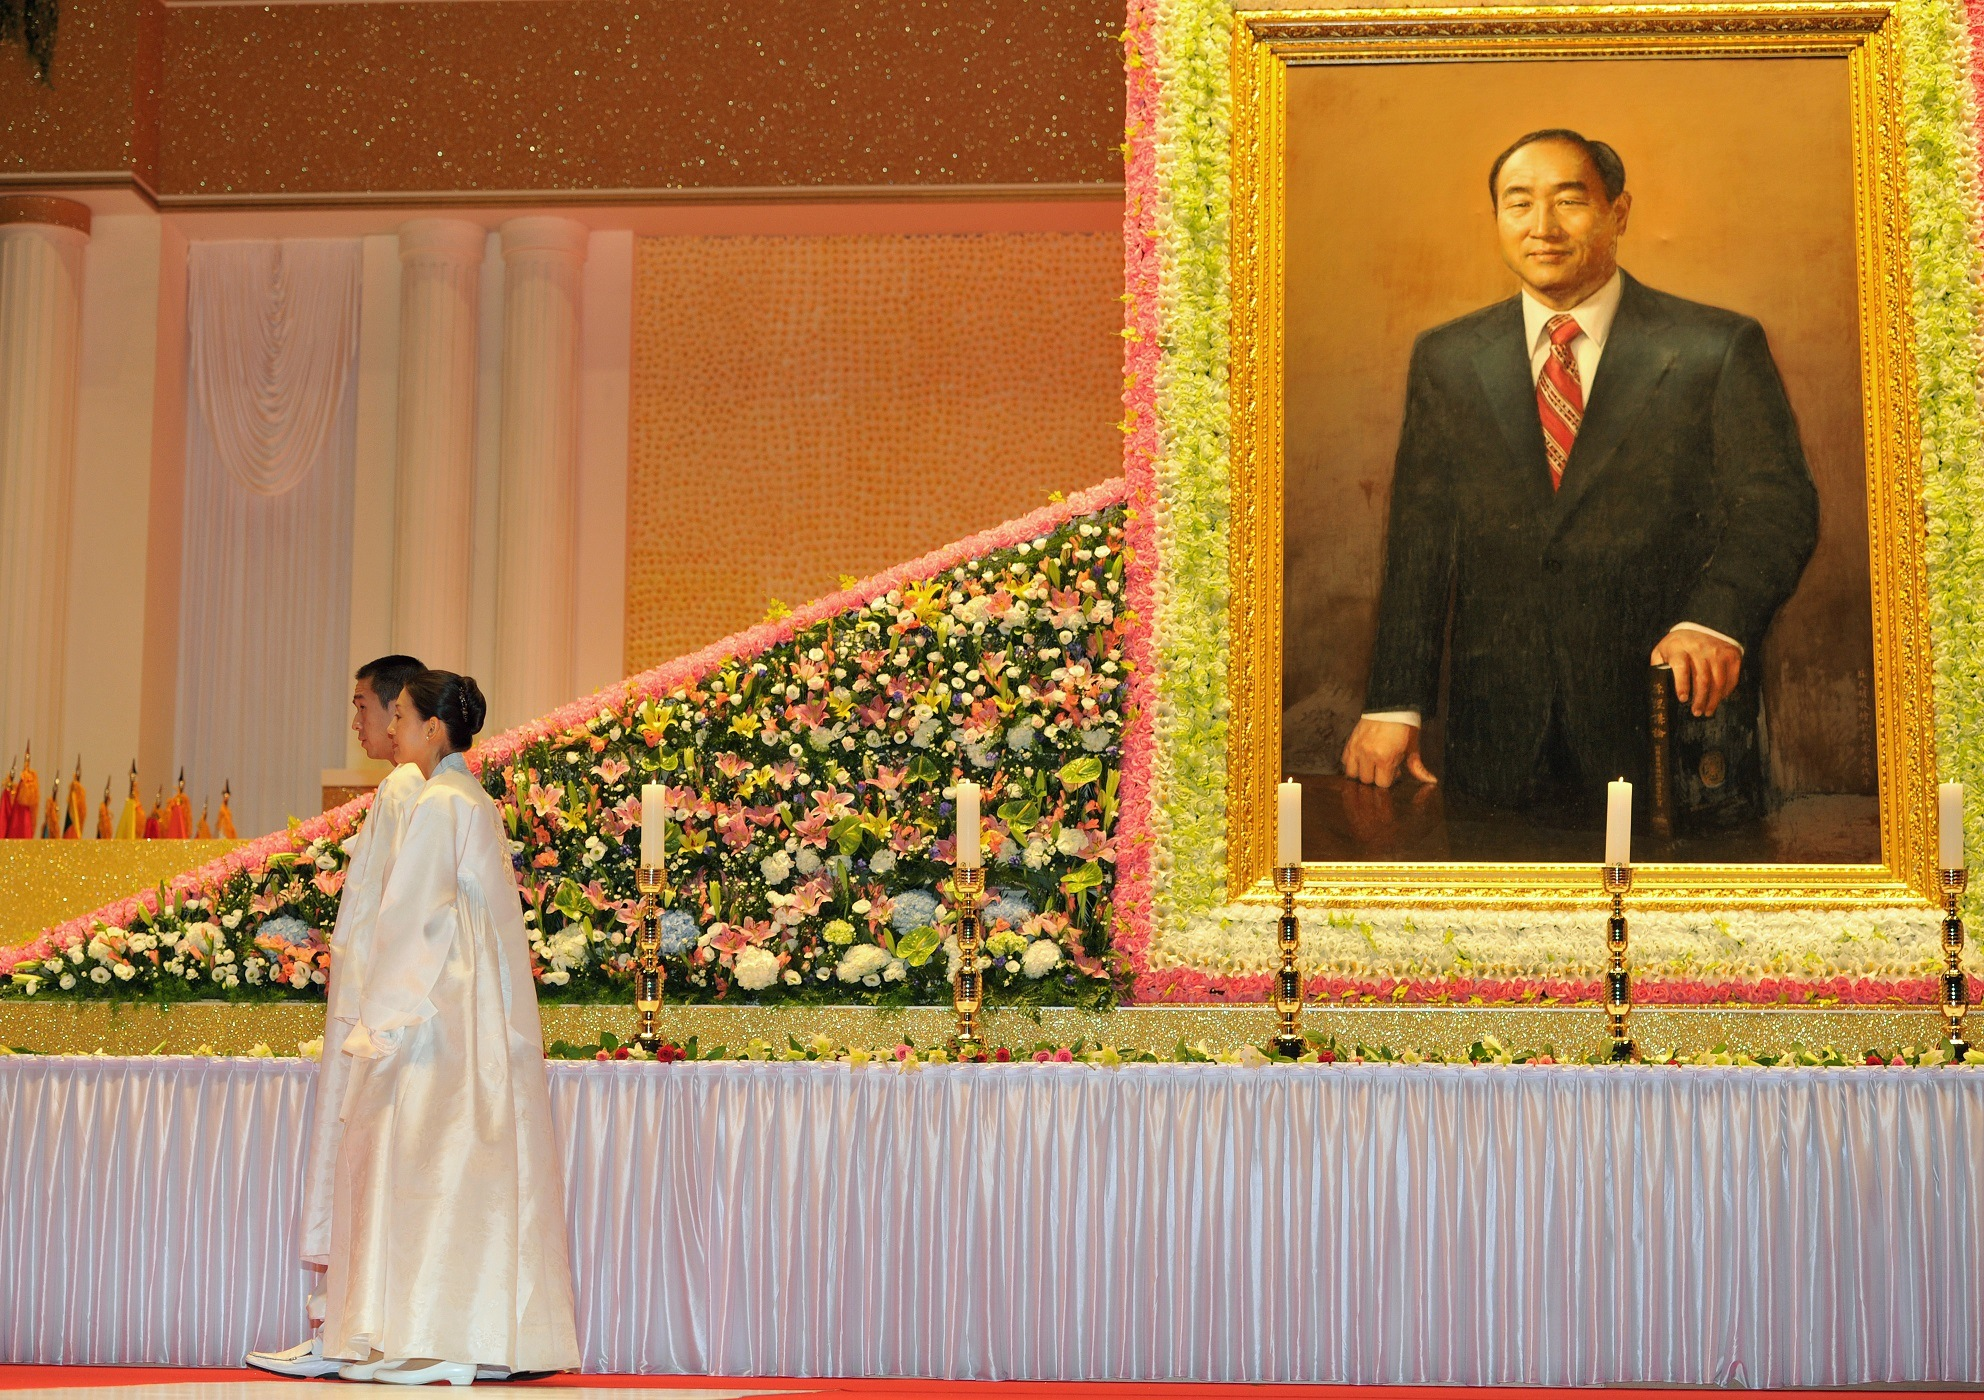 Unification Church founder Hyung-Jin Moon and Sun Myung Moon